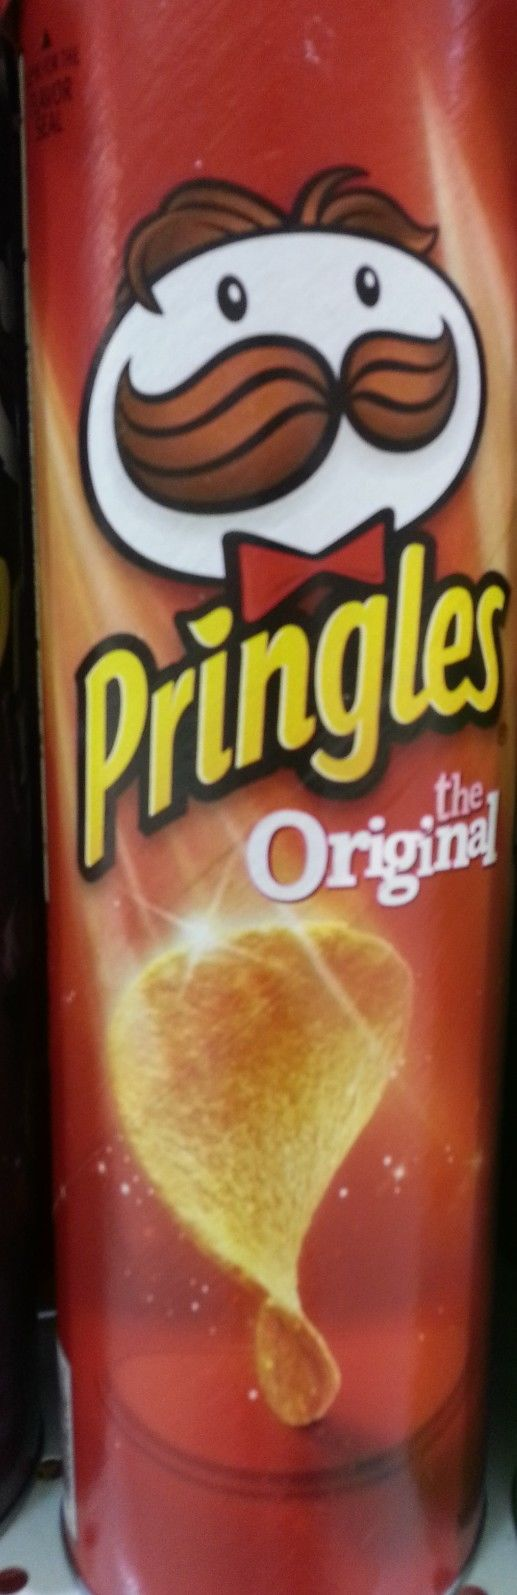 why pringles are delish 88 reviews of metro cafe more of a take out deli than a and the verdict - delish got some pickle relish on there, spicy mustard pringles, sodas.